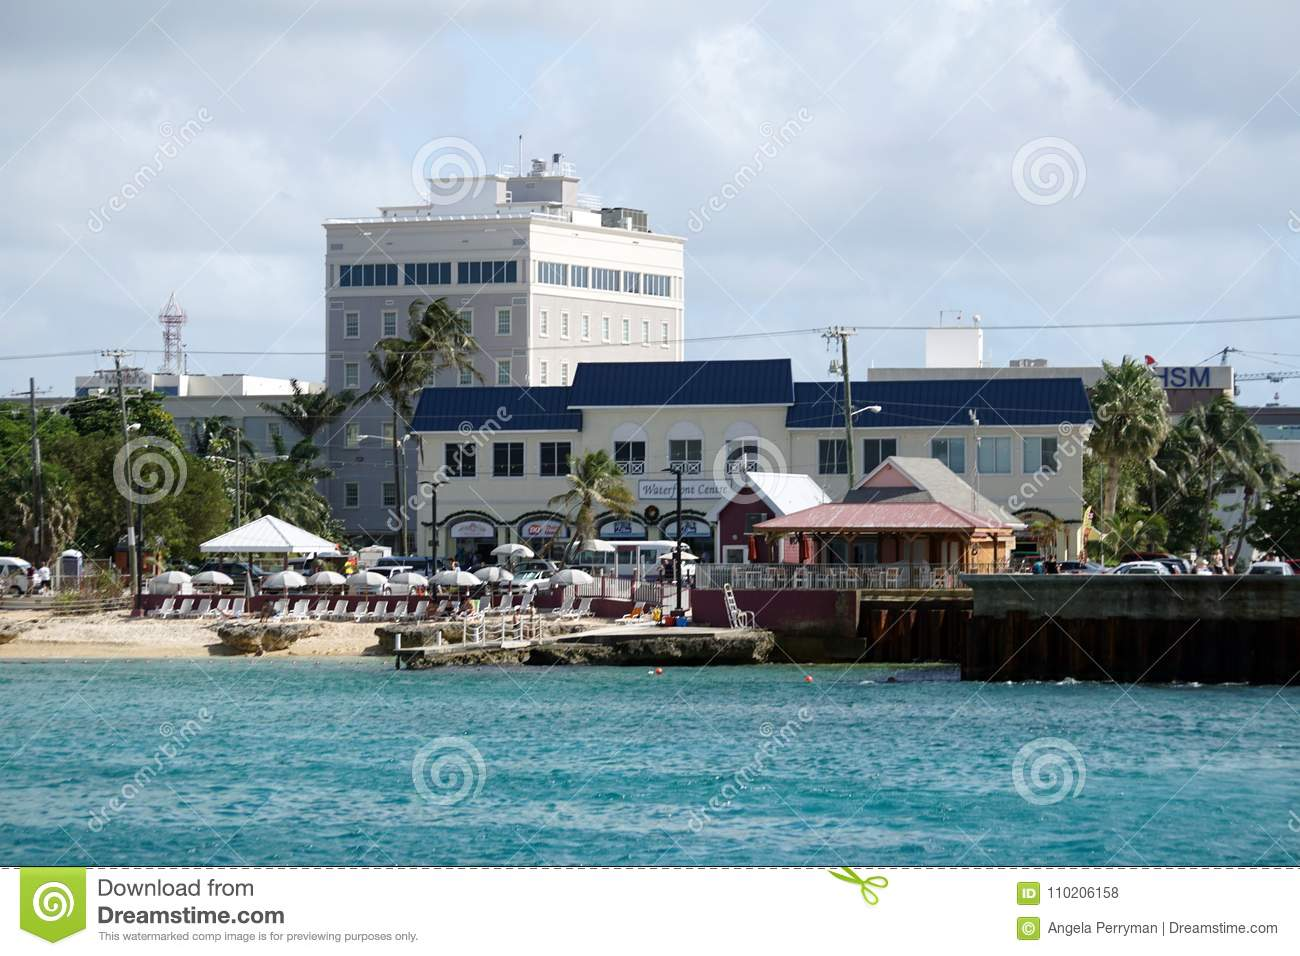 Restaurants And Businesses Along The Waterfront On Grand Cayman